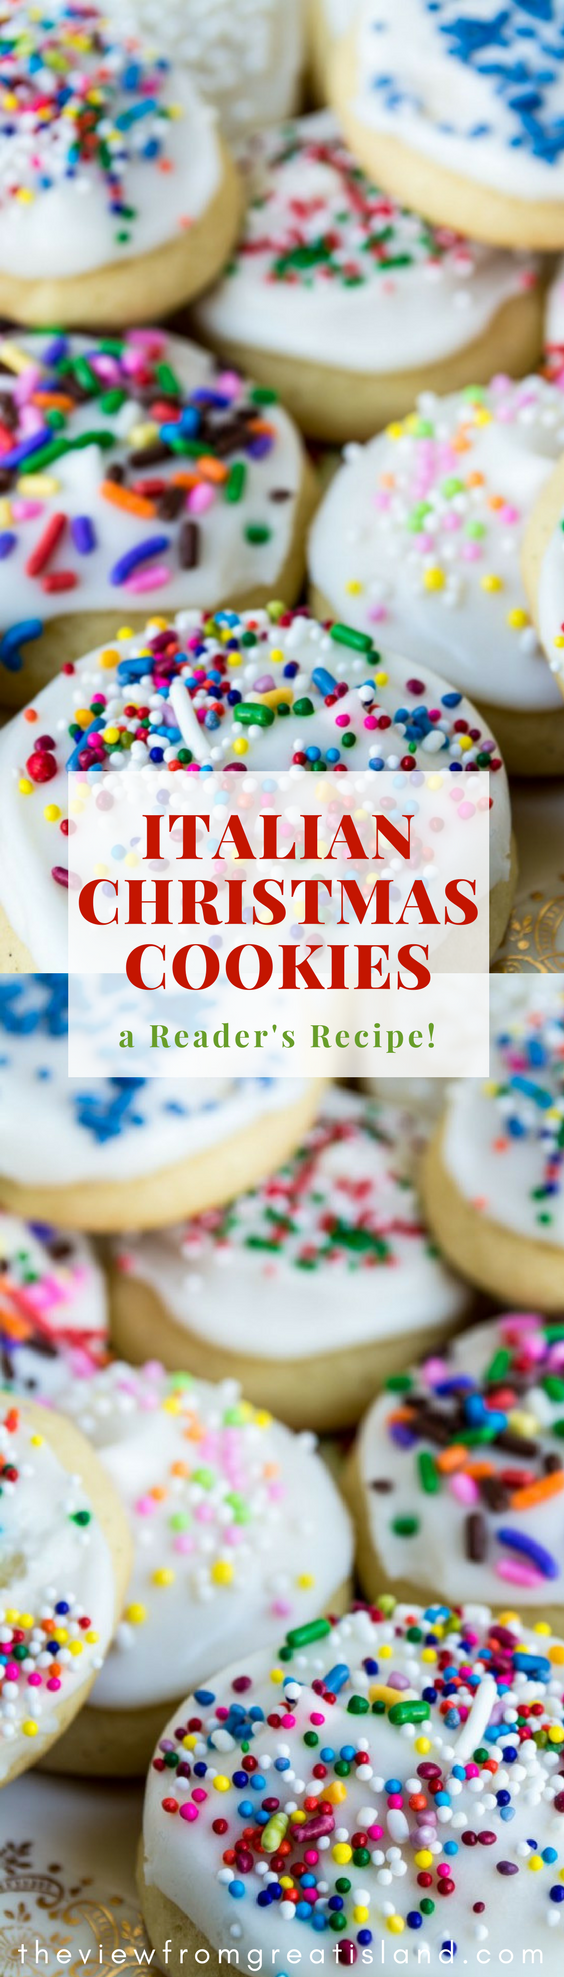 Reader's Recipes: Italian Christmas Cookies ~ these classic holiday cookies have a soft texture, a buttery flavor, and lots of festive frosting on top! #cookies #Christmascookies #holidaycookies #dessert #Italiancookies #frostedcookies #sprinkles #easycookies #vanilla #vanillacookies #dropcookies